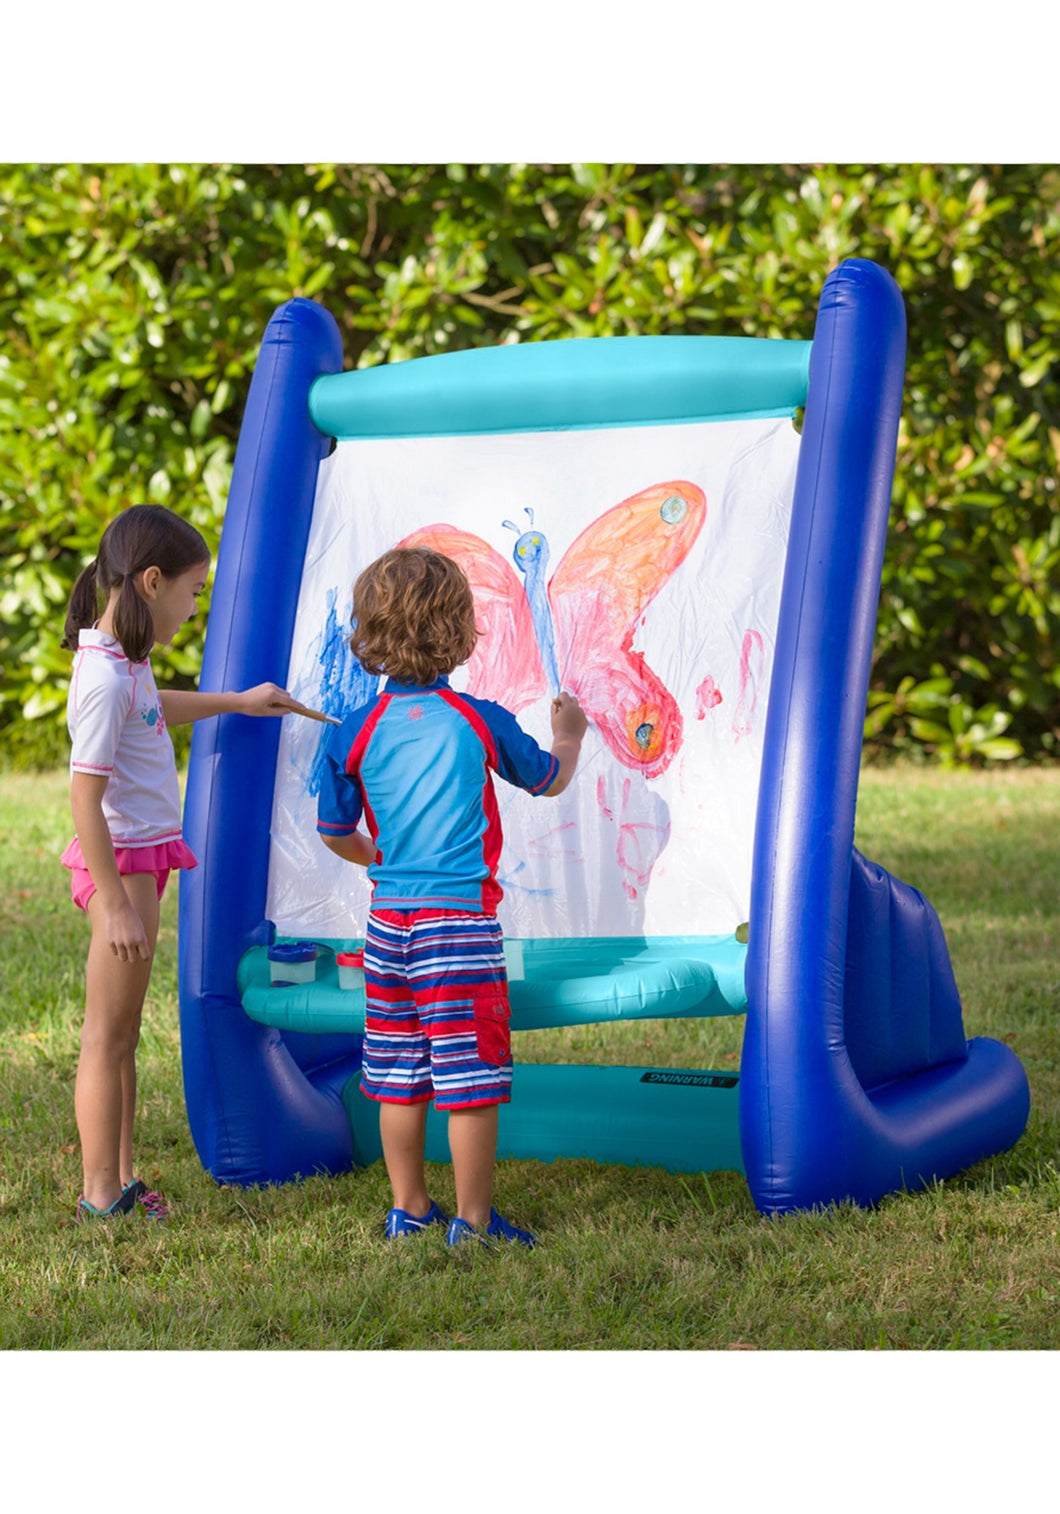 Inflatable Easel with Paints, Blue/White | Hearth Song